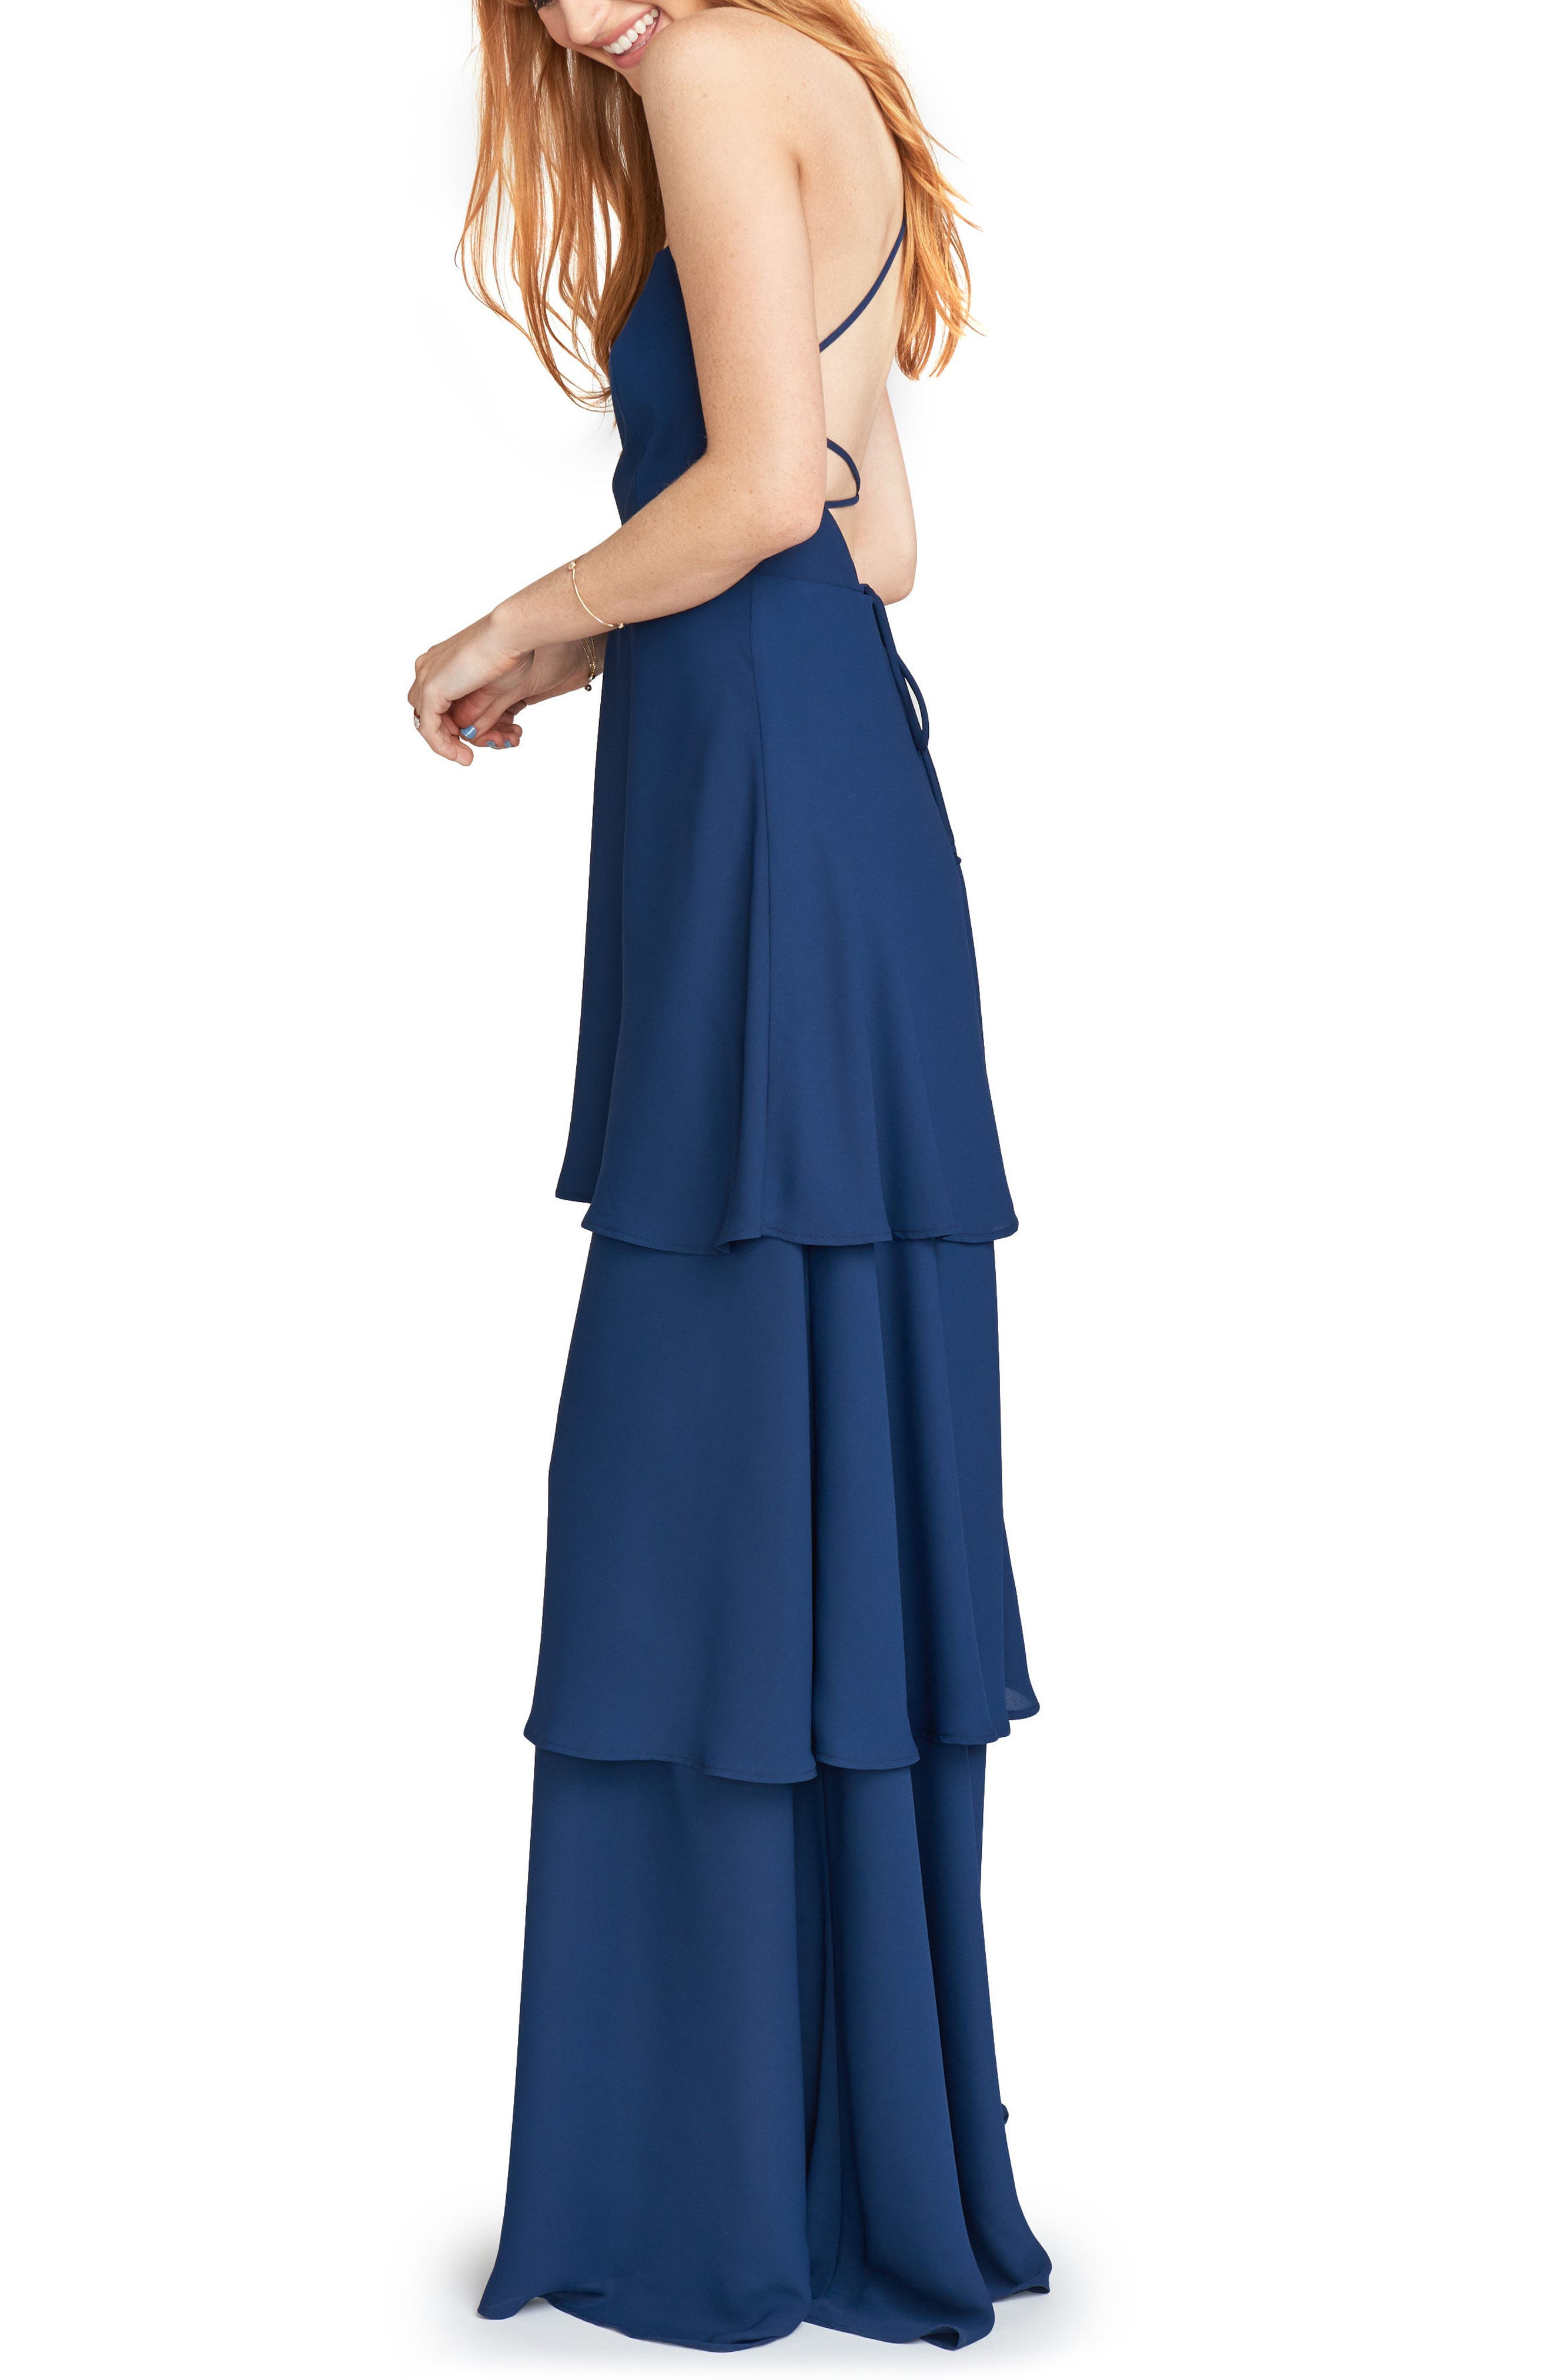 Calypso Strappy Tiered Maxi Dress,                             Alternate thumbnail 3, color,                             Rich Navy